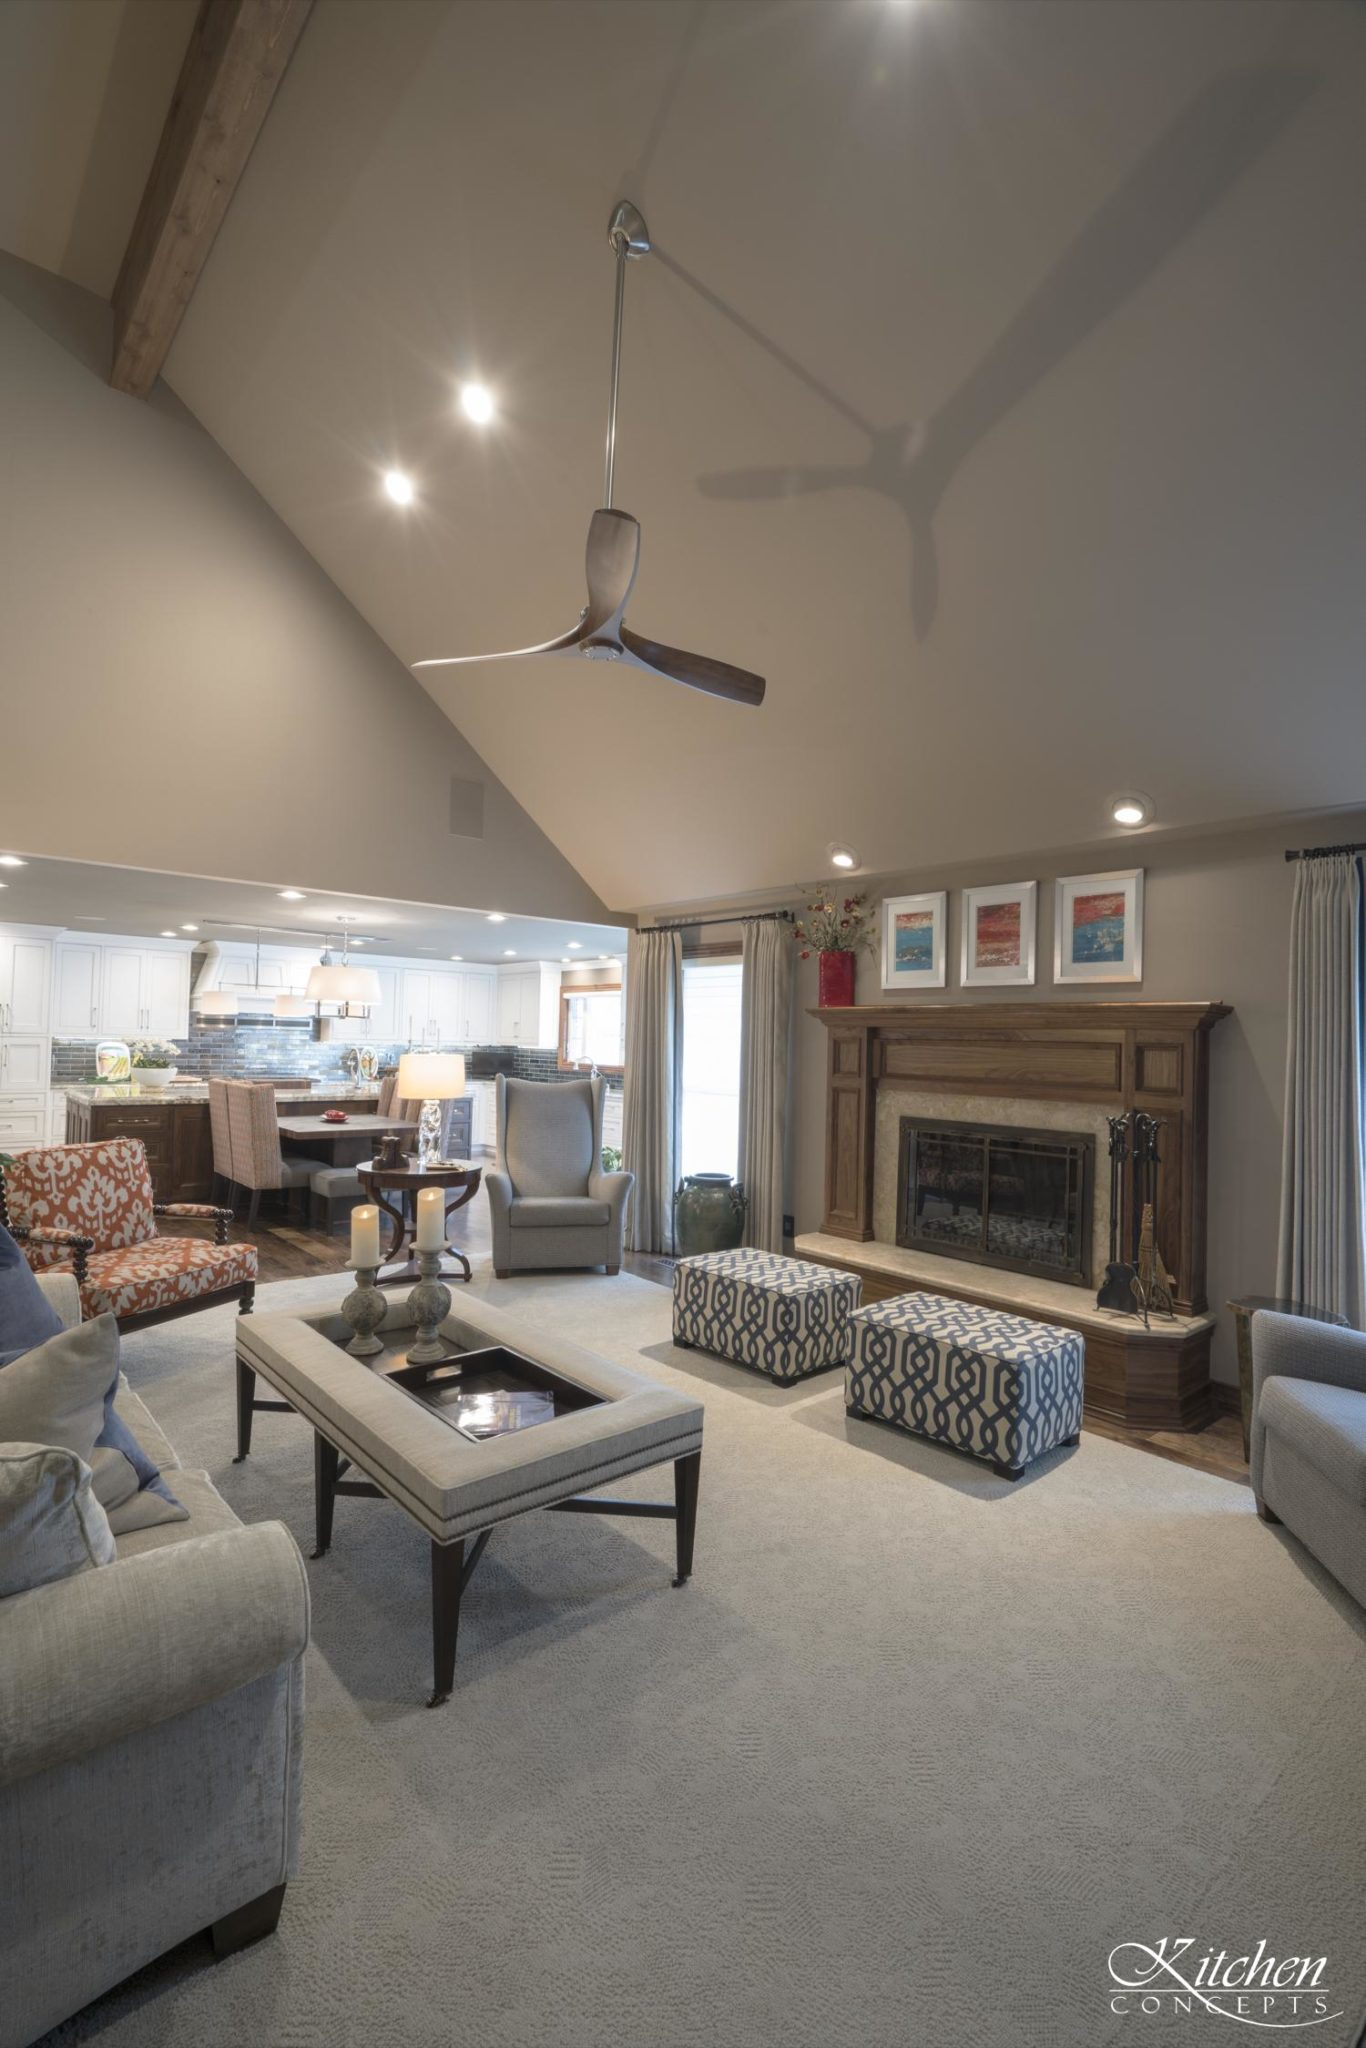 Living Room Remodel With Grand Piano